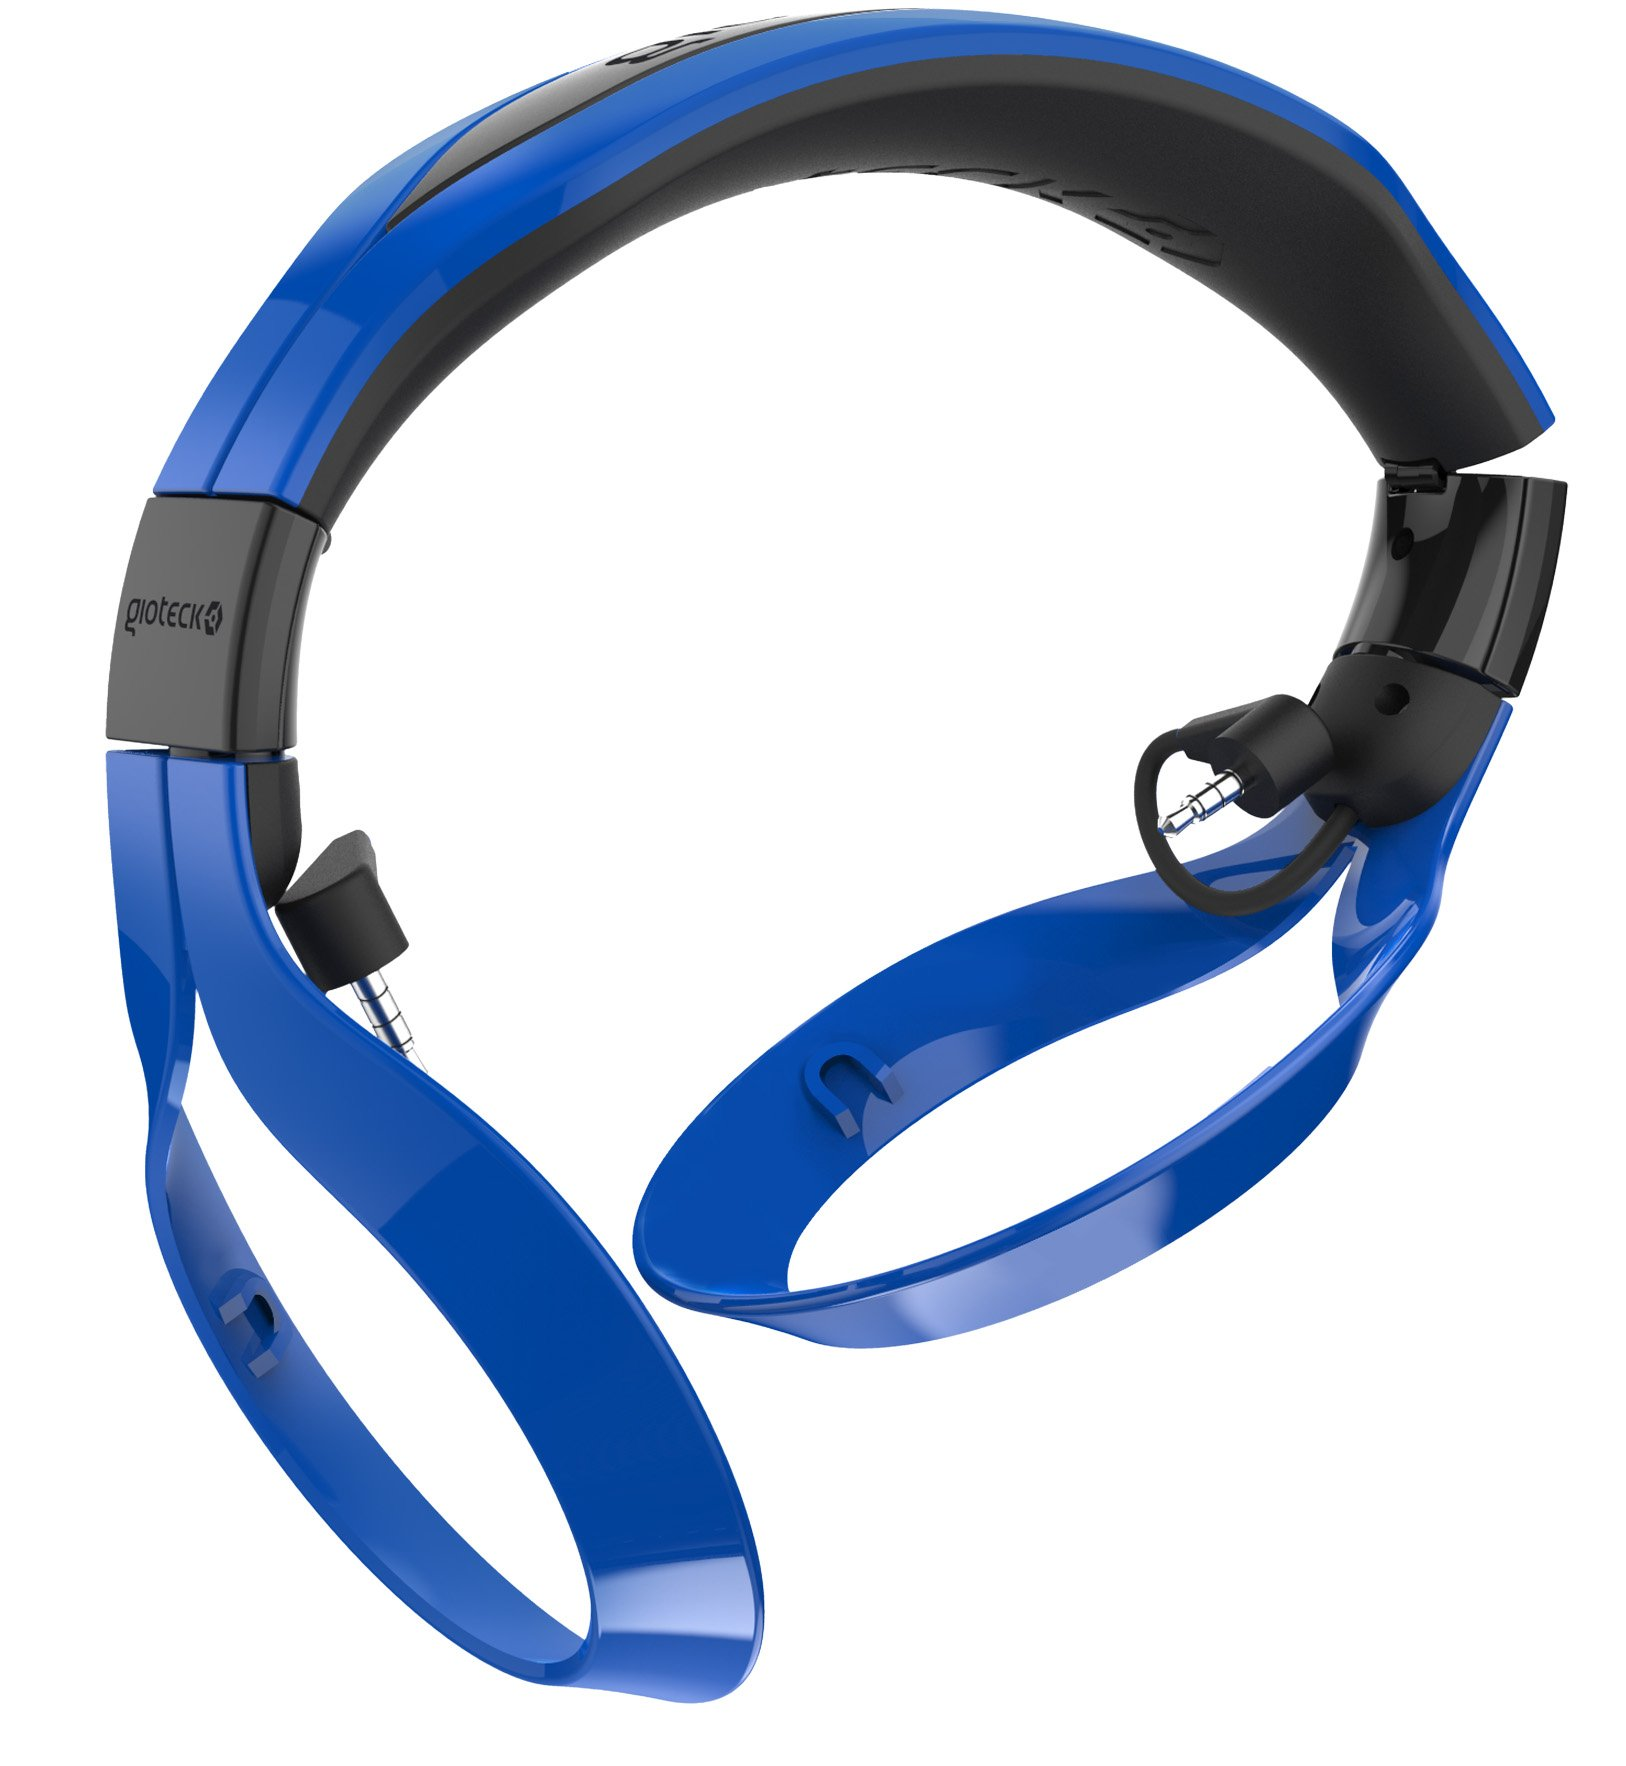 Gioteck FL-300 Wired Stereo Headset with Removable Bluetooth Speakers - Blue by Gioteck (Image #3)